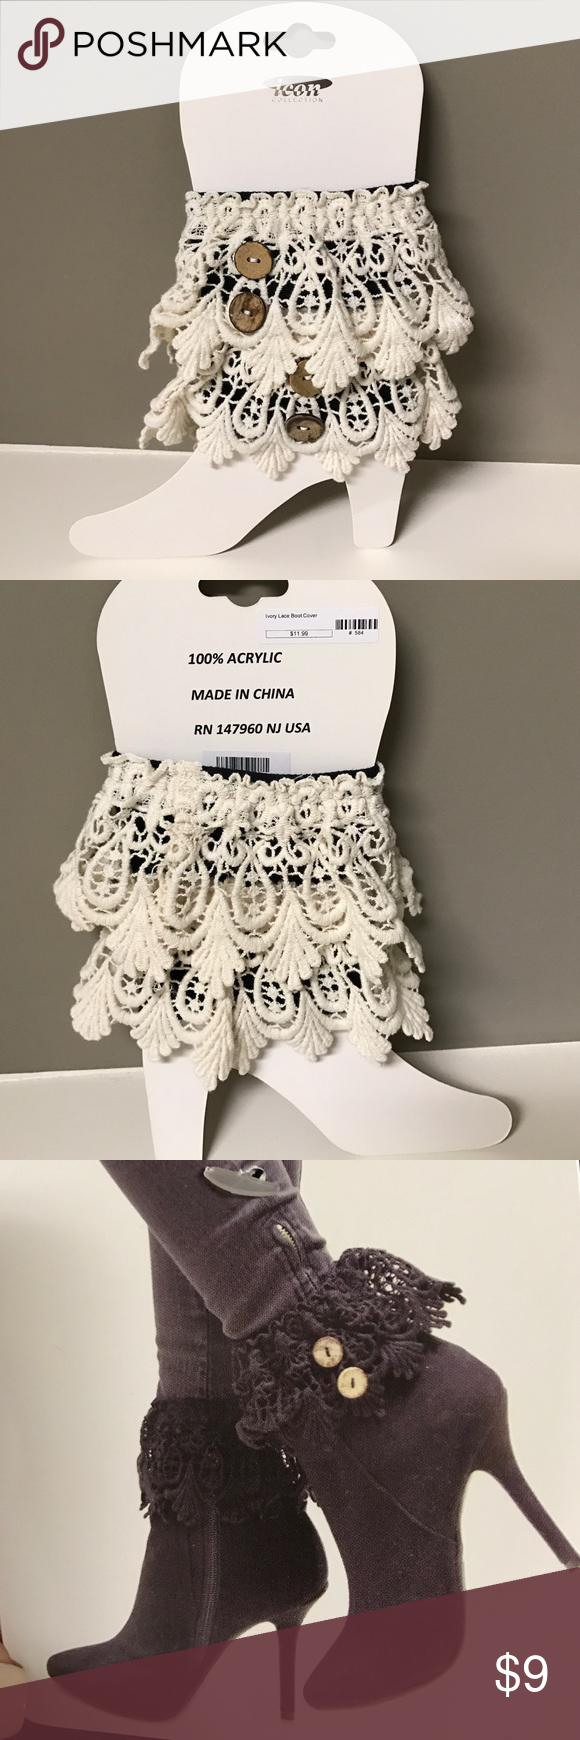 Ivory Lace Boot Cover Ivory, One Size Fits Most Boots, New With Tags Icon Collection Accessories